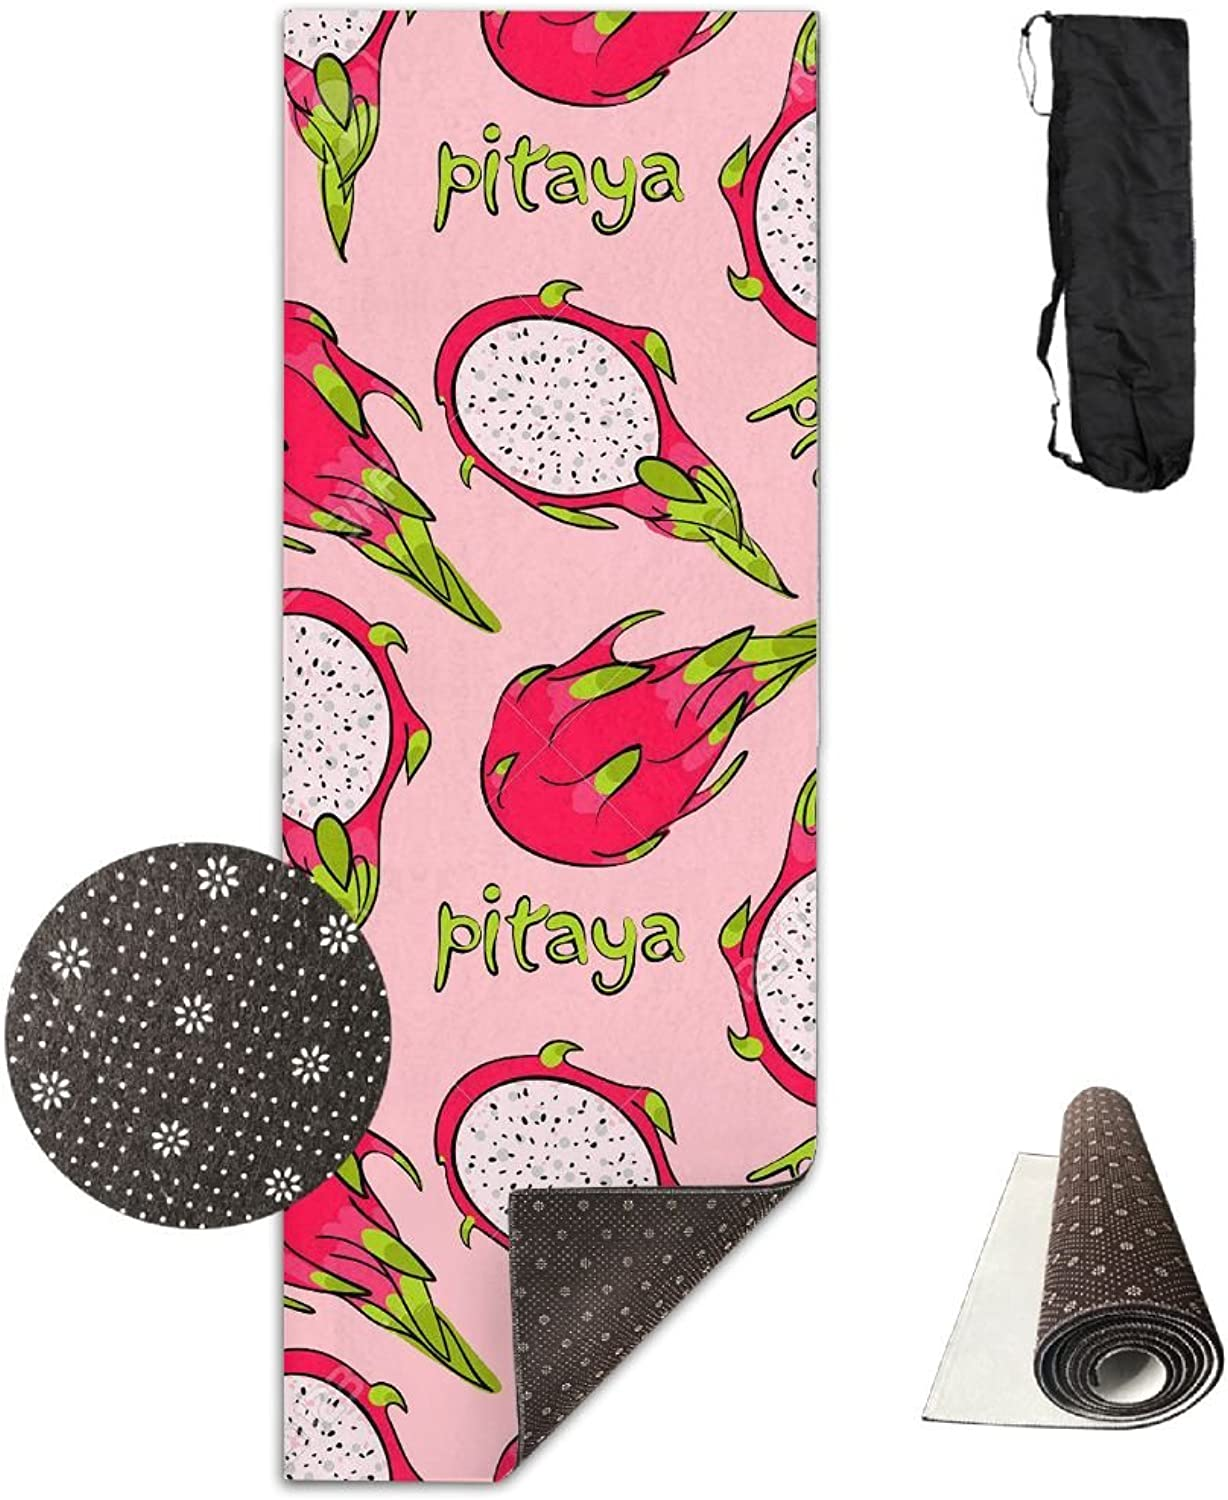 Gym Mat Pitaya Pattern Fitness High Density AntiTear Exercise Yoga Mat With Carrying Bag For Exercise,Pilates